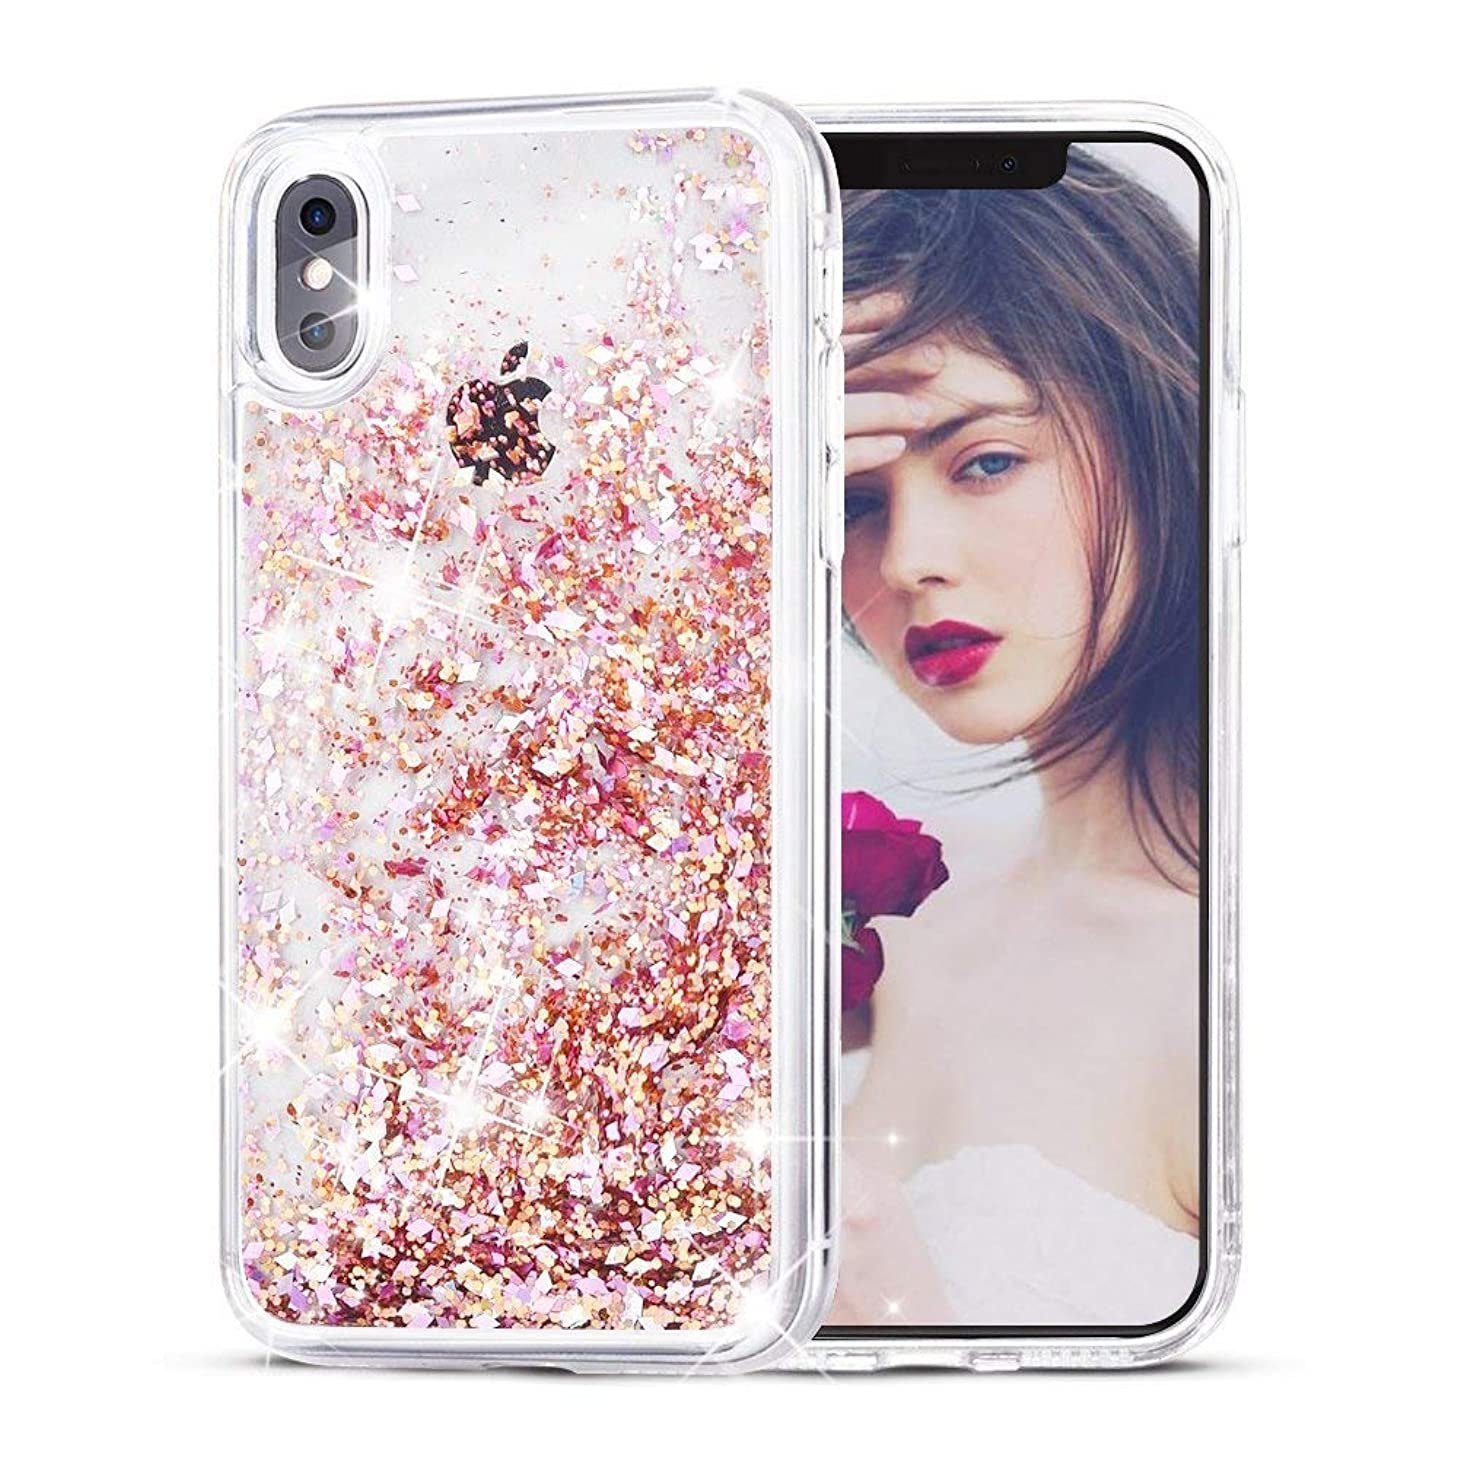 SUPVIN Creative Glitter Liquid Sparkle Bling Bumper Case Clear [TPU+PC] Floating Quicksand Protective Grily Cute Phone Cover Compatible for iPhone X/iPhone 10 (Pink) (Renewed)